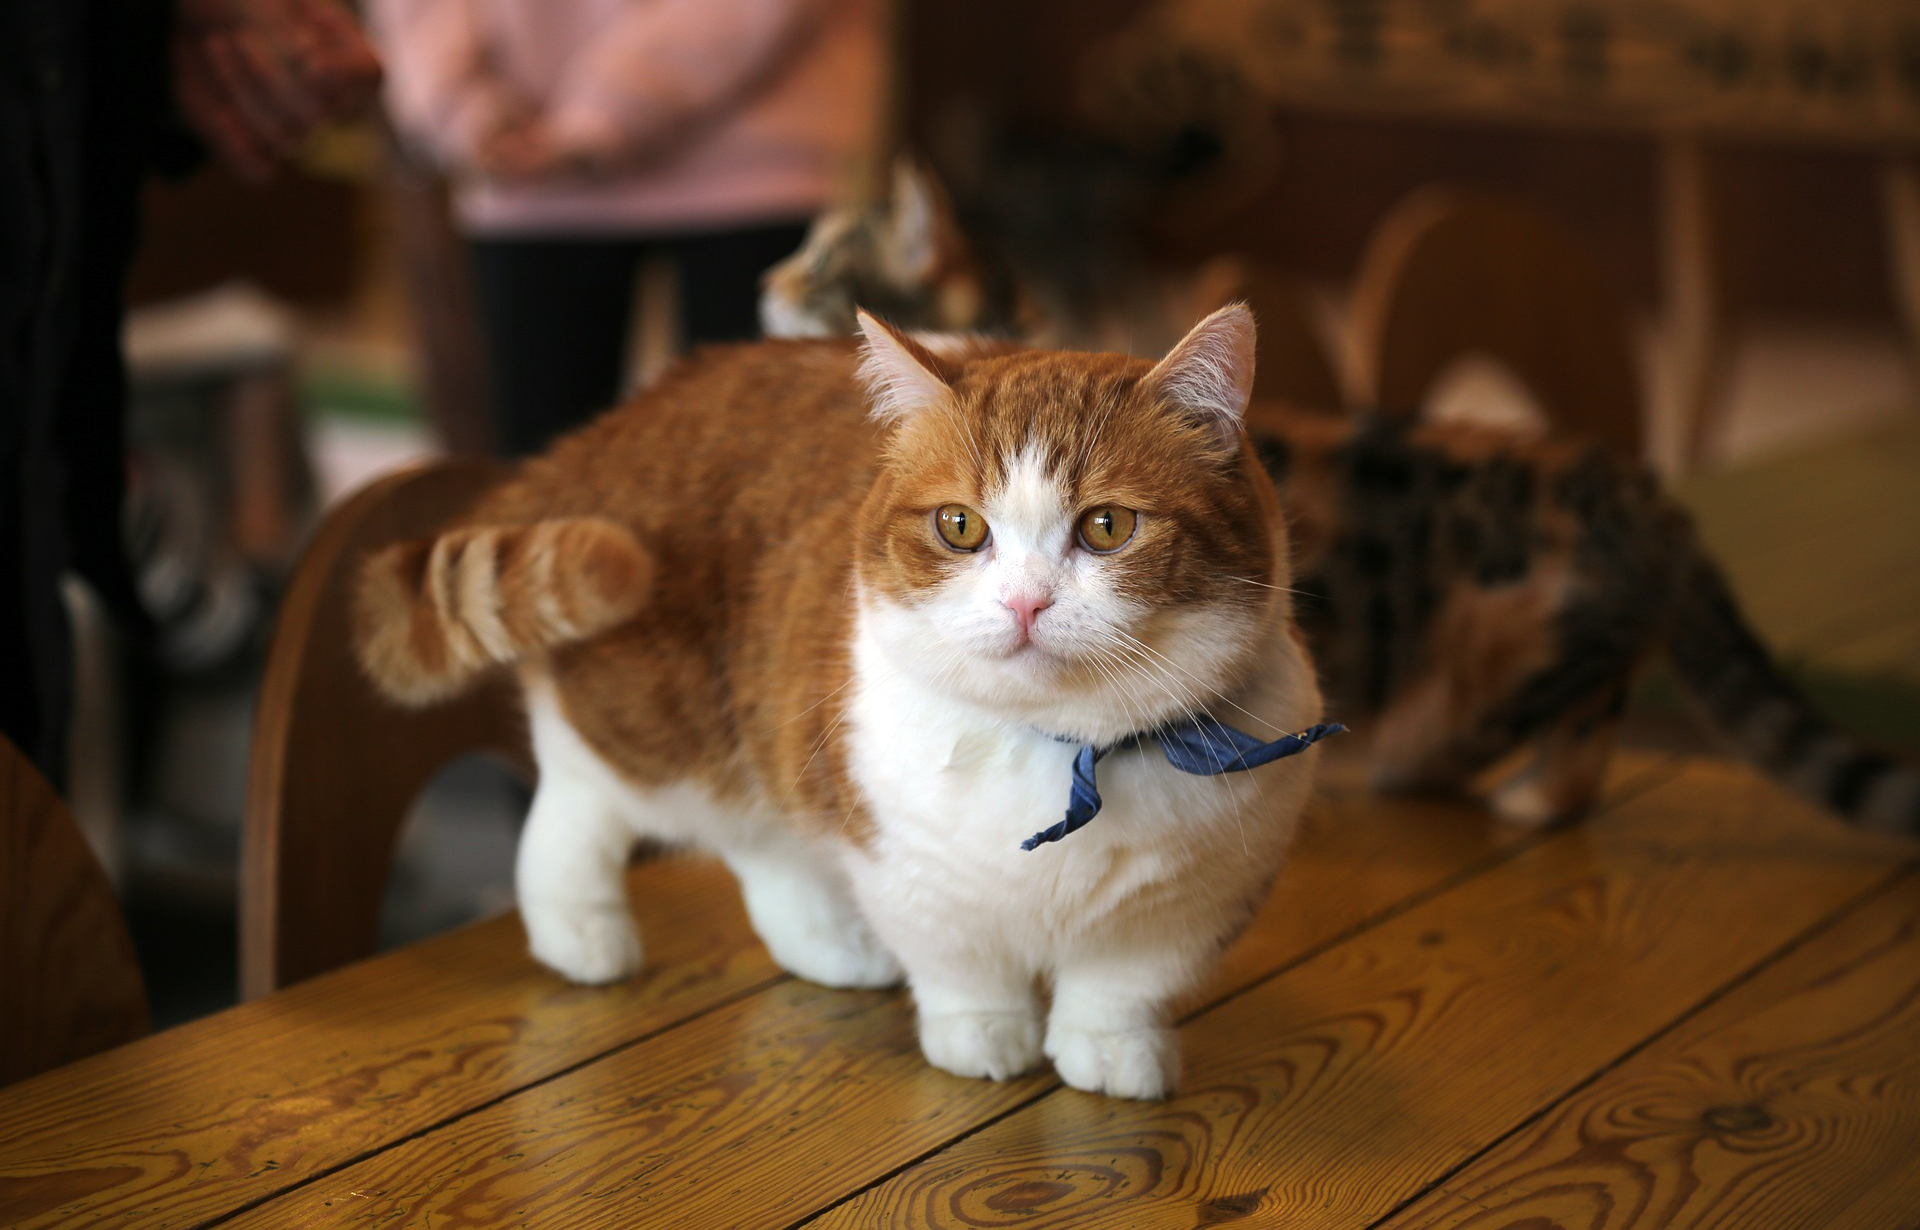 5 Cat Breeds That Stay Small The Paw Print